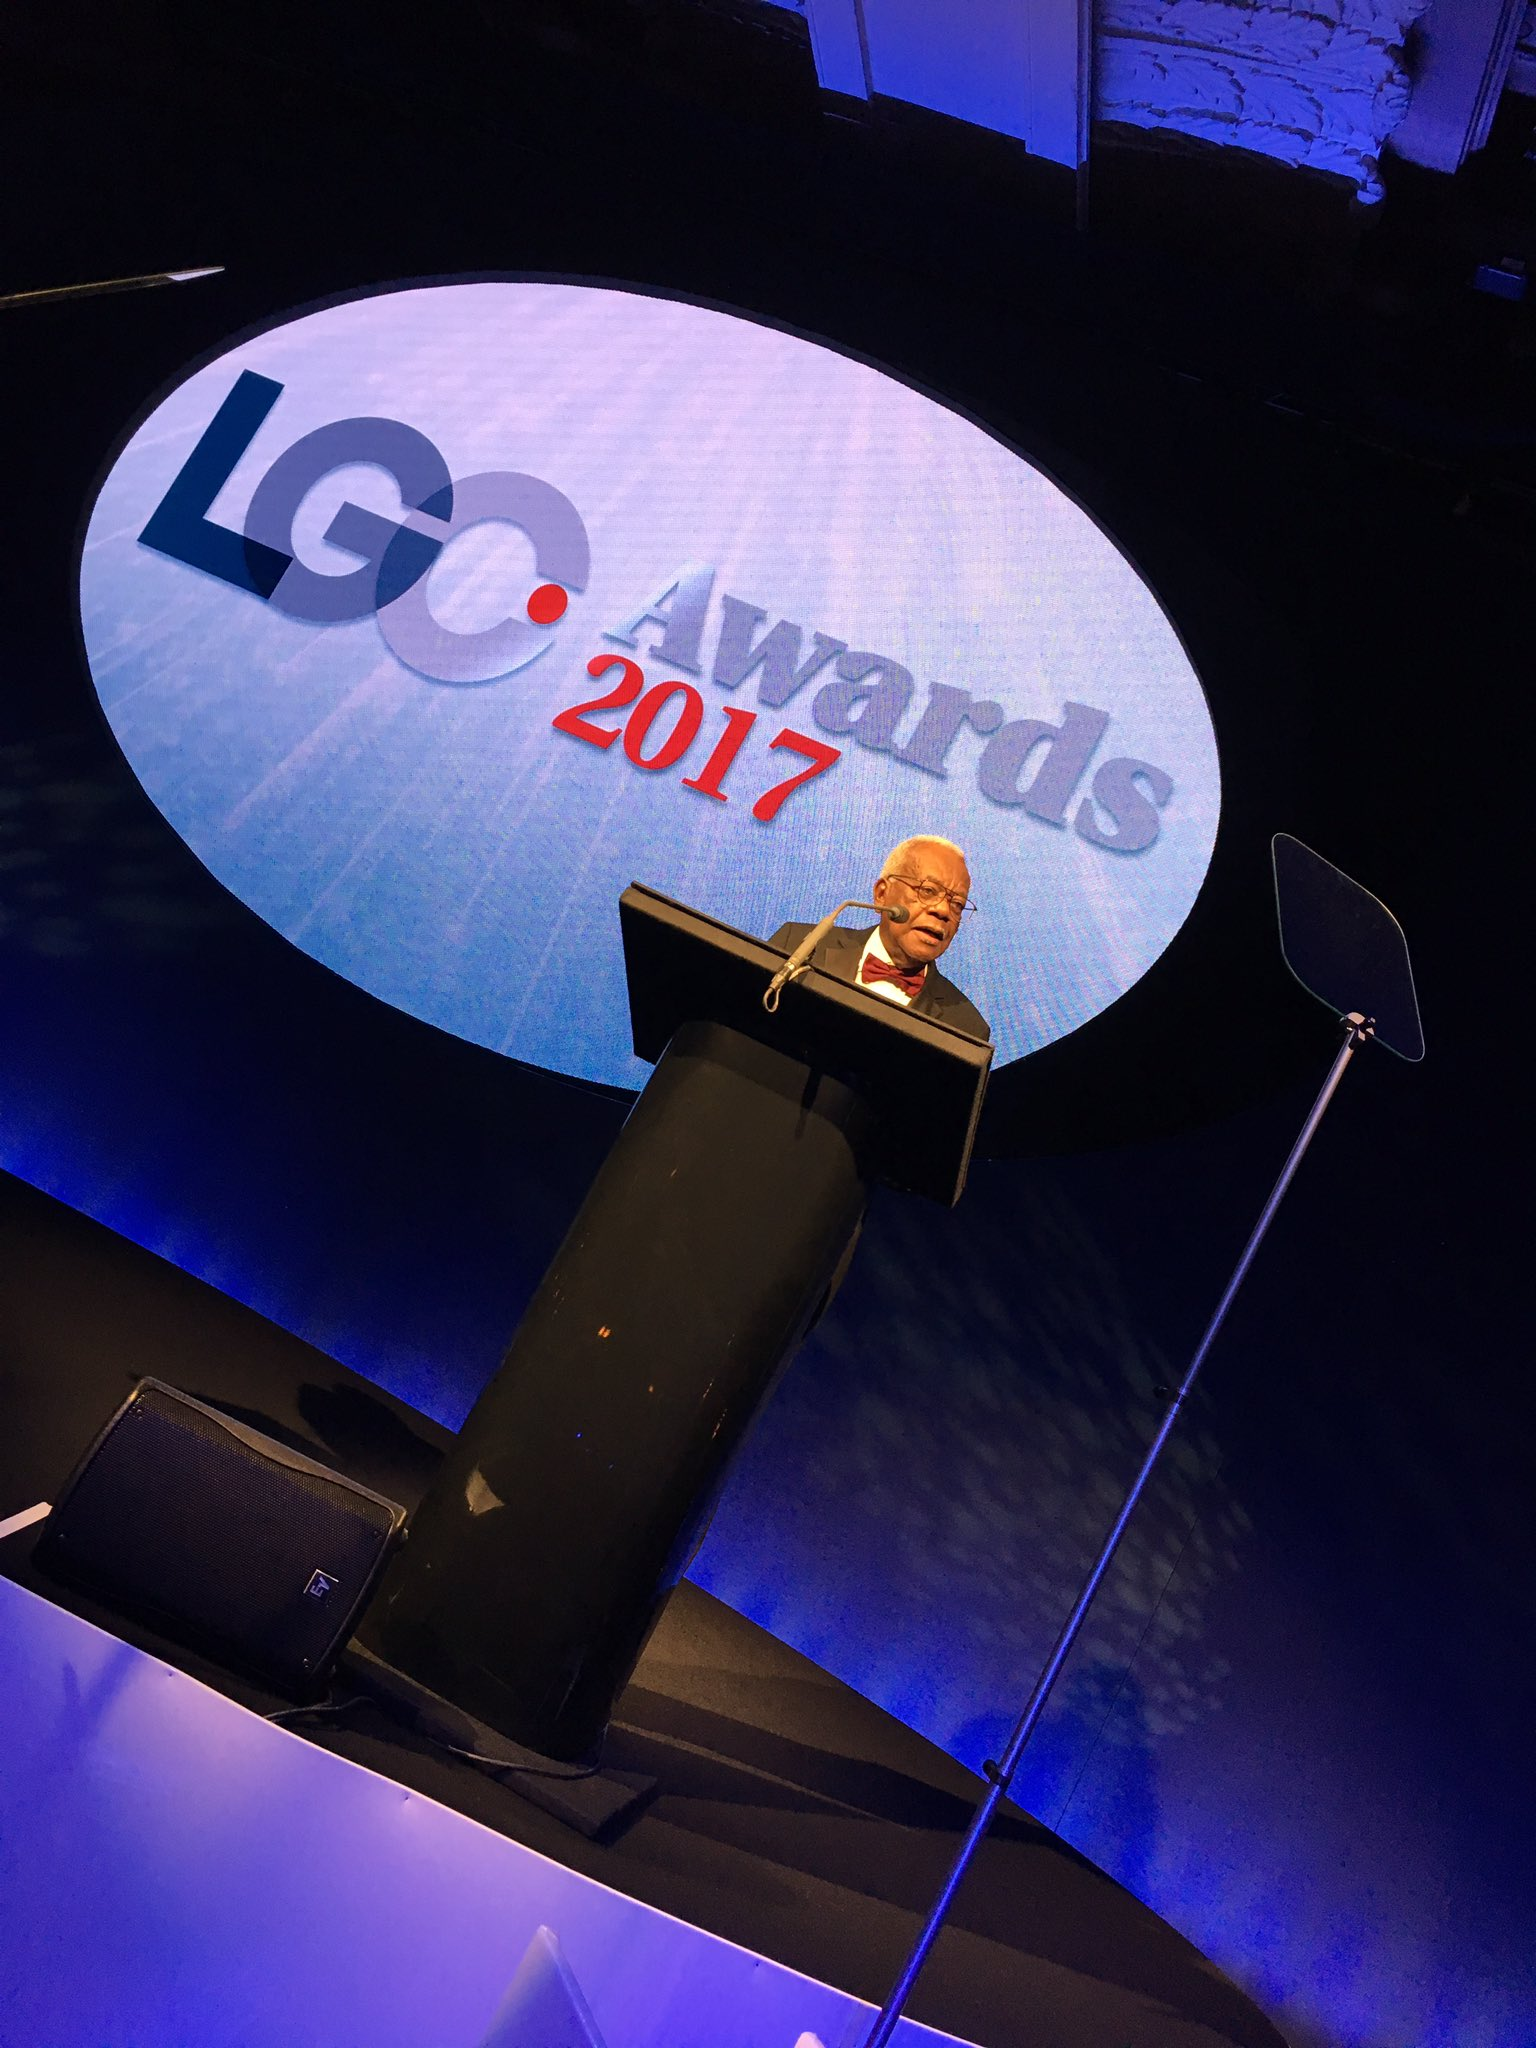 Delighted to share in the celebration of inspiring local government @LGCAwards this evening. The foundations for a decent society #lgcawards https://t.co/a6sE6bG4z6